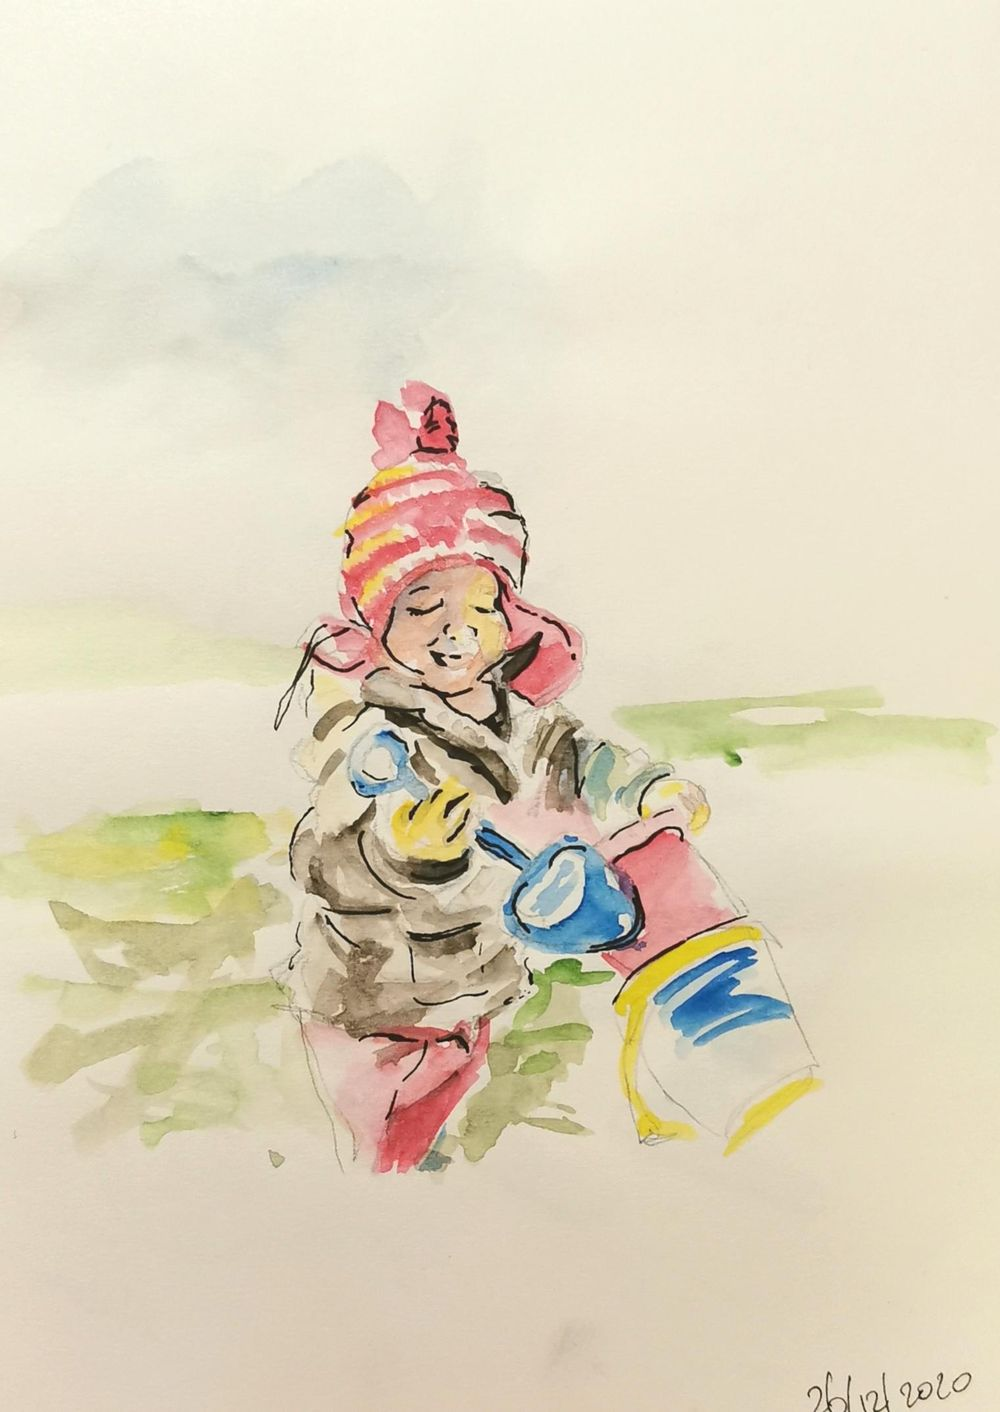 sketching people with watercolor and fountain pen - image 3 - student project